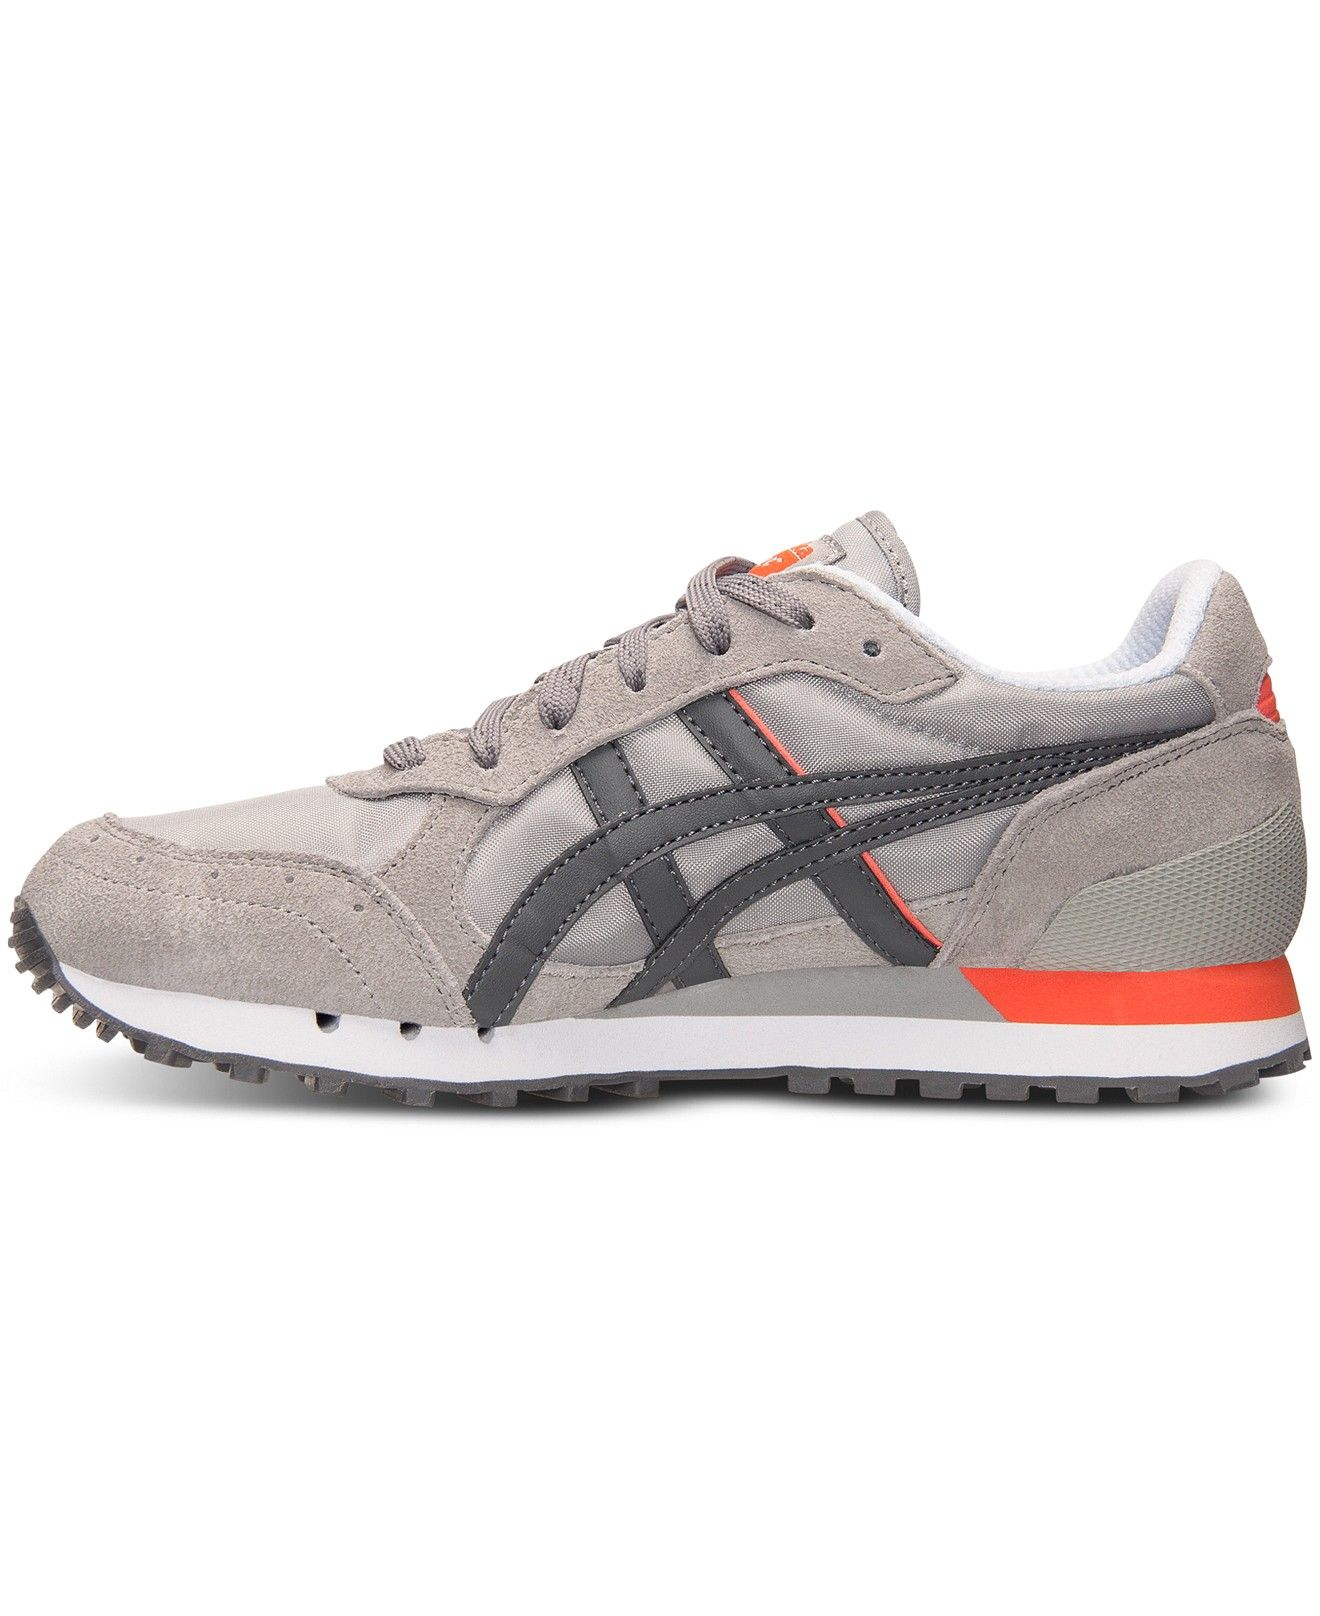 Asics Women's Onitsuka Tiger Colorado 85 Casual Sneakers from Finish Line -  Sneakers - Shoes -